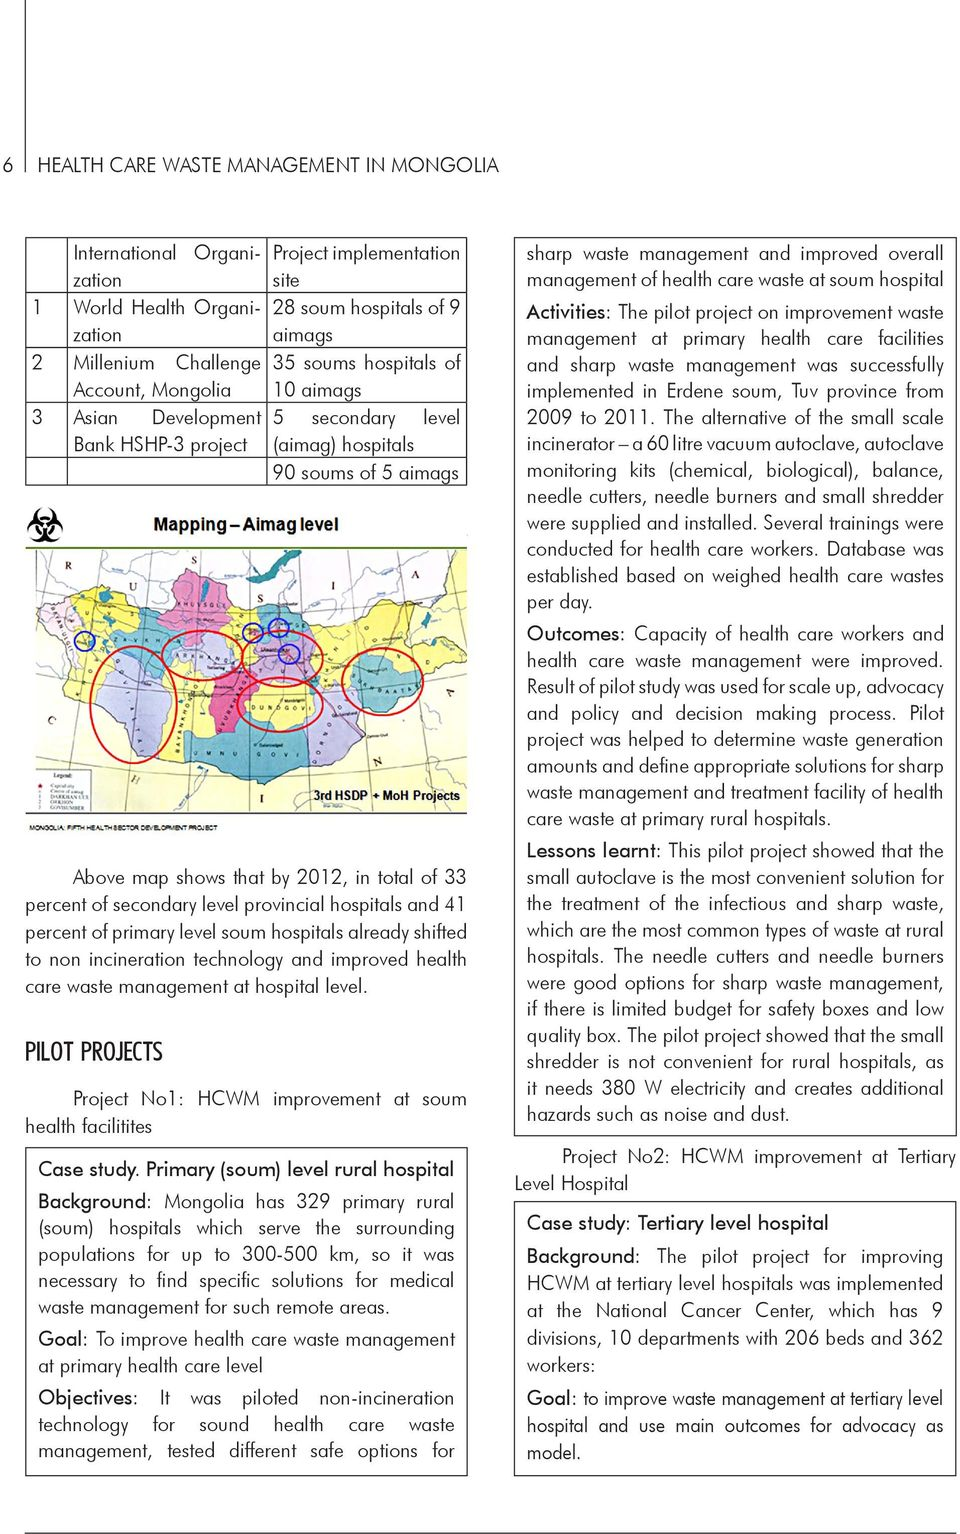 HEALTH CARE WASTE MANAGEMENT IN MONGOLIA - PDF